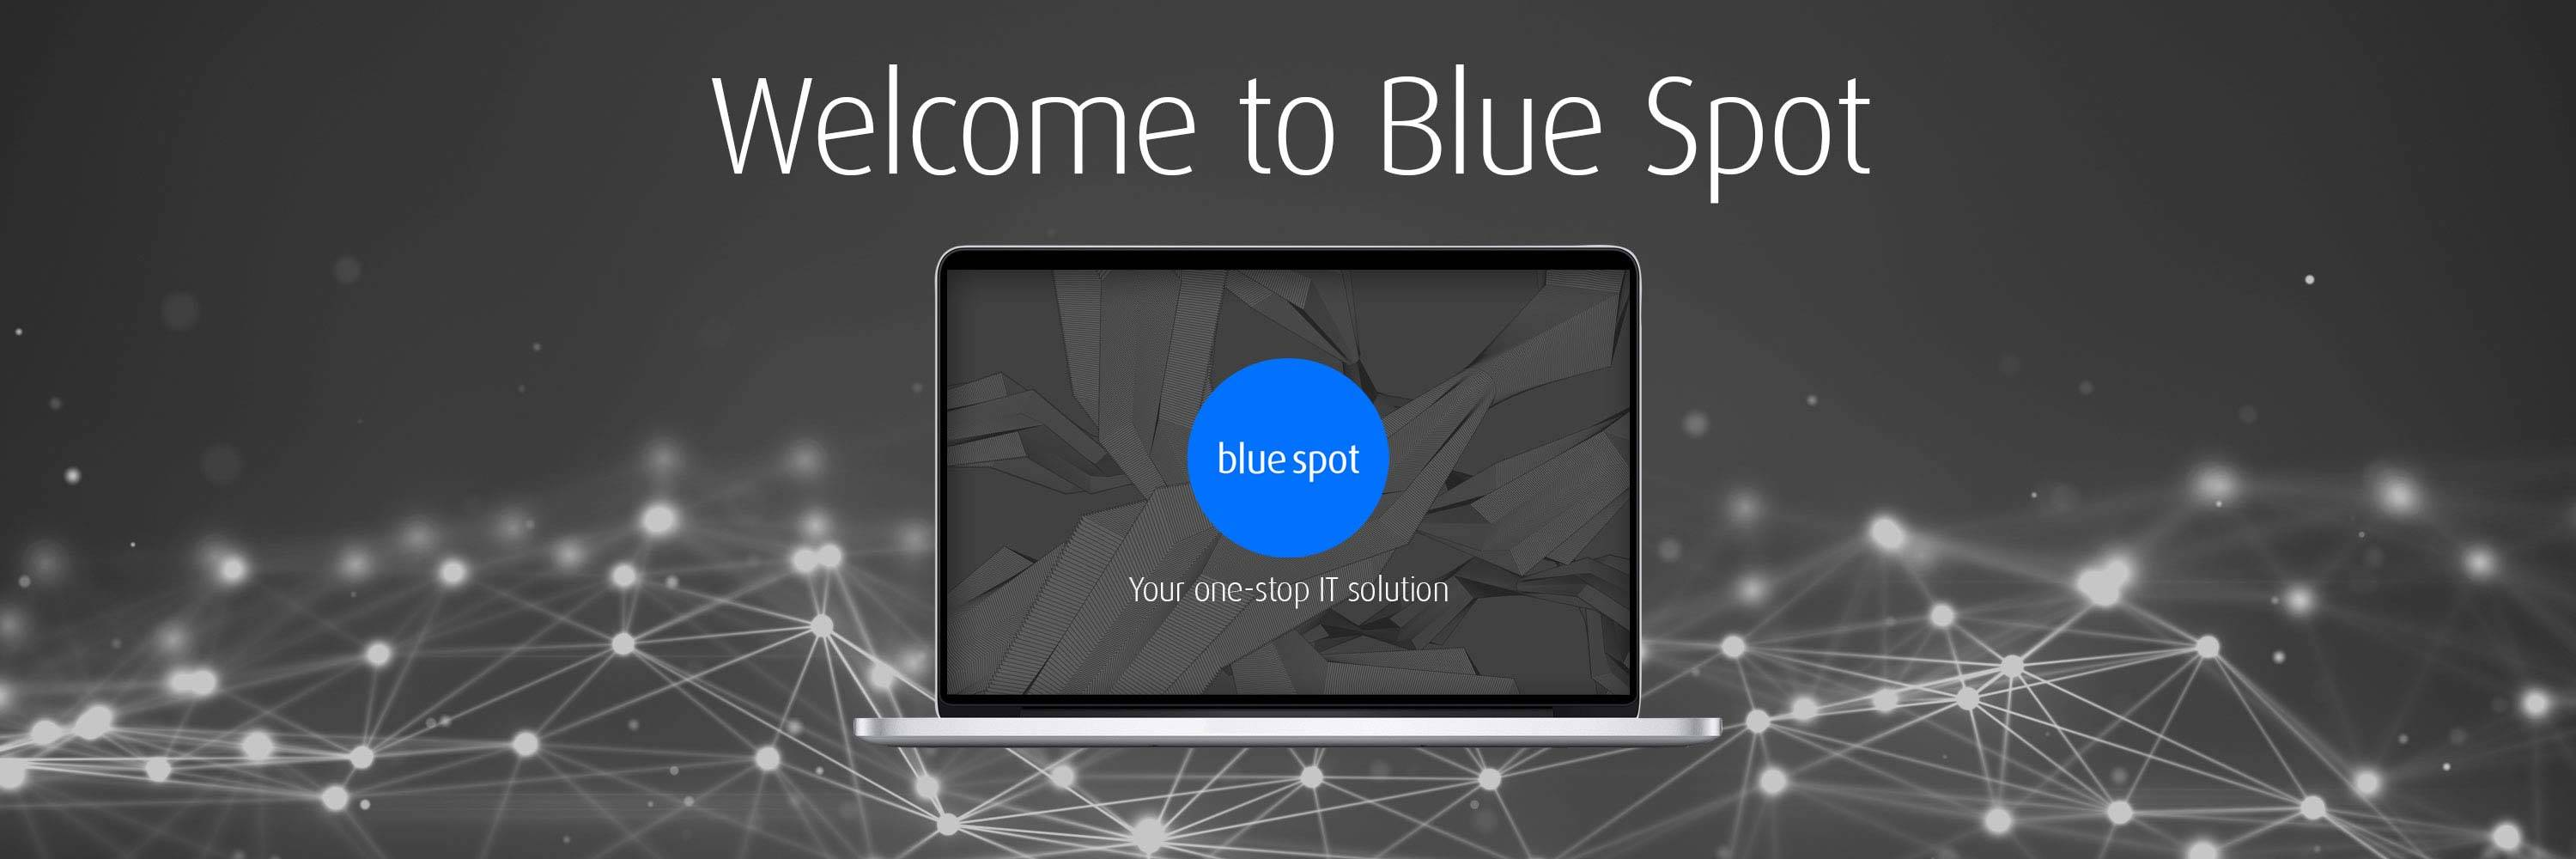 Blue Spot Computers homepage main image